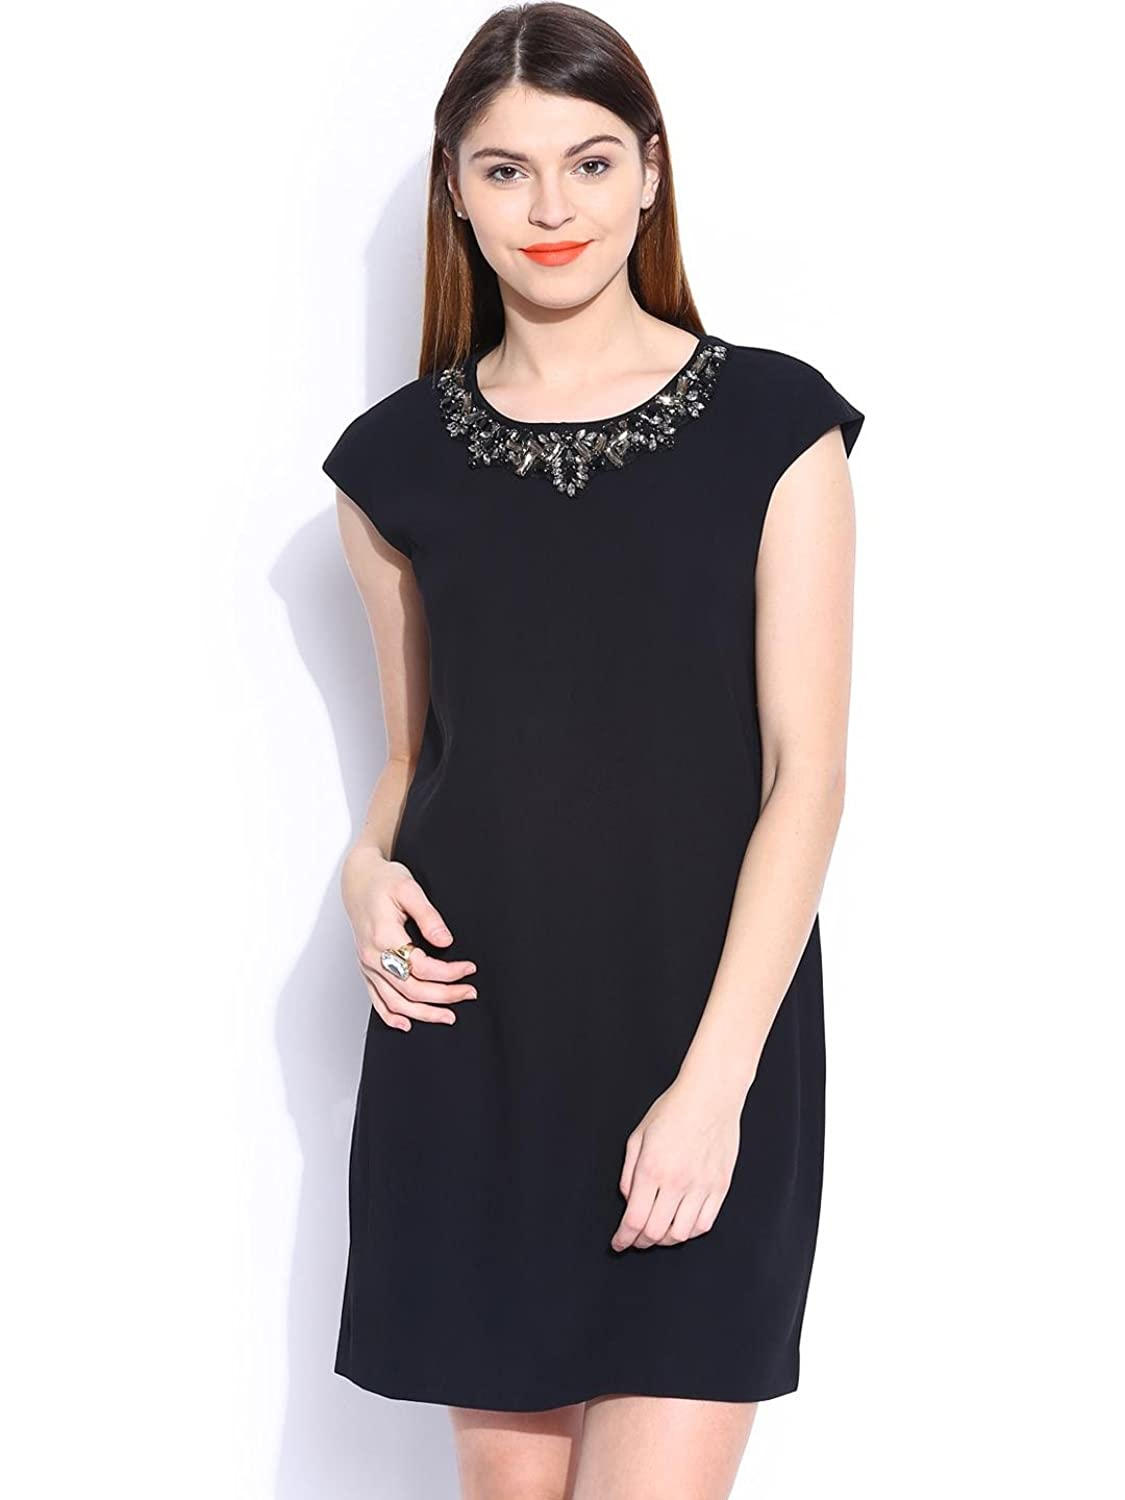 Women's Black Polyester Solid Sleeveless Casual Fit & Flare Dress